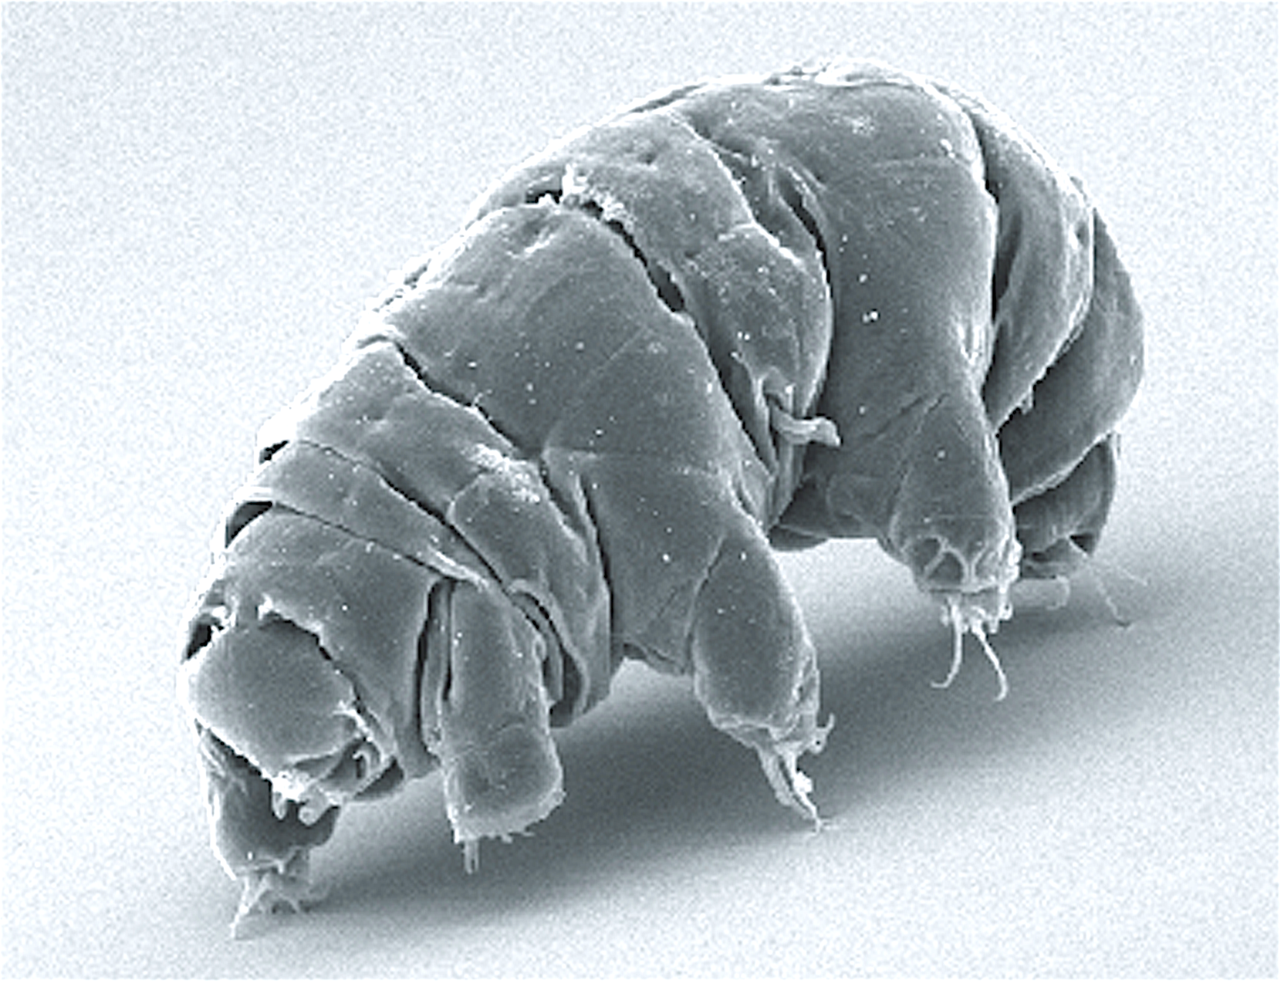 1280px SEM image of Milnesium tardigradum in active state journal.pone.0045682.g001 2 wikipedia